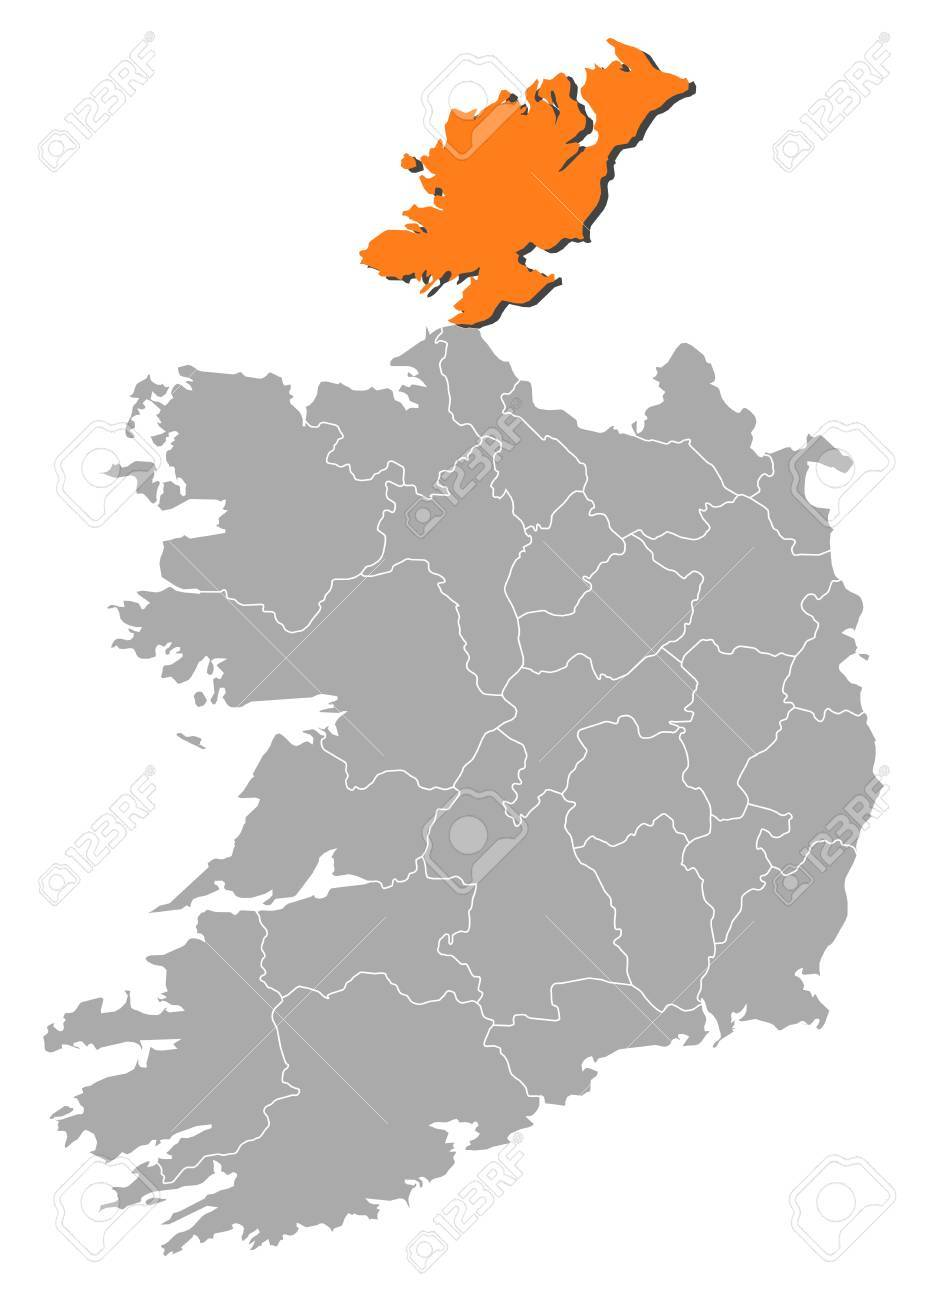 Donegal Map Of Ireland.Map Of Ireland With The Provinces Donegal Is Highlighted By